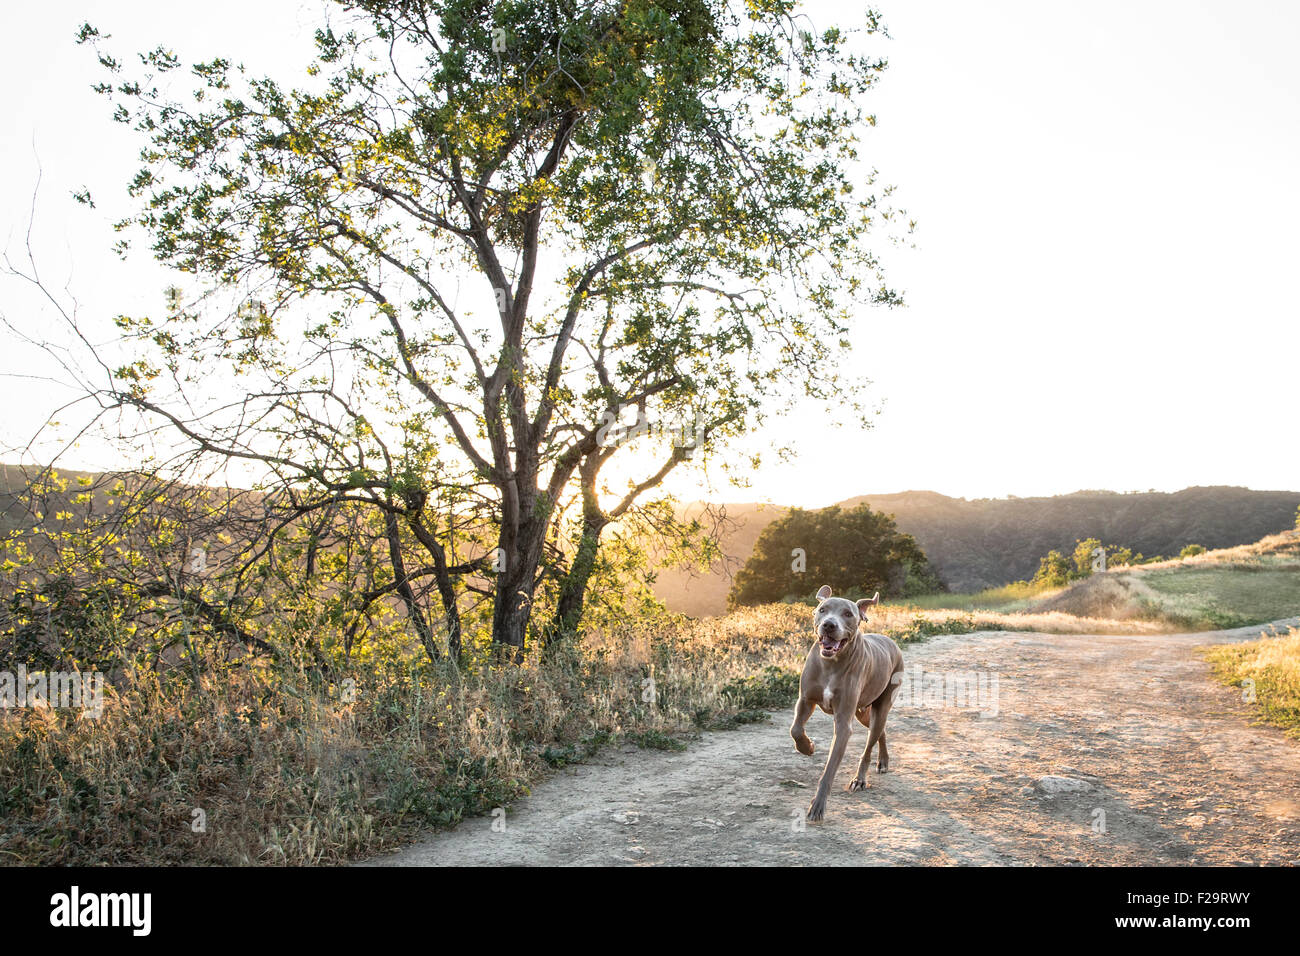 Weimaraner dog running on dirt trail next to large lone tree back lit by sun setting over mountain range - Stock Image